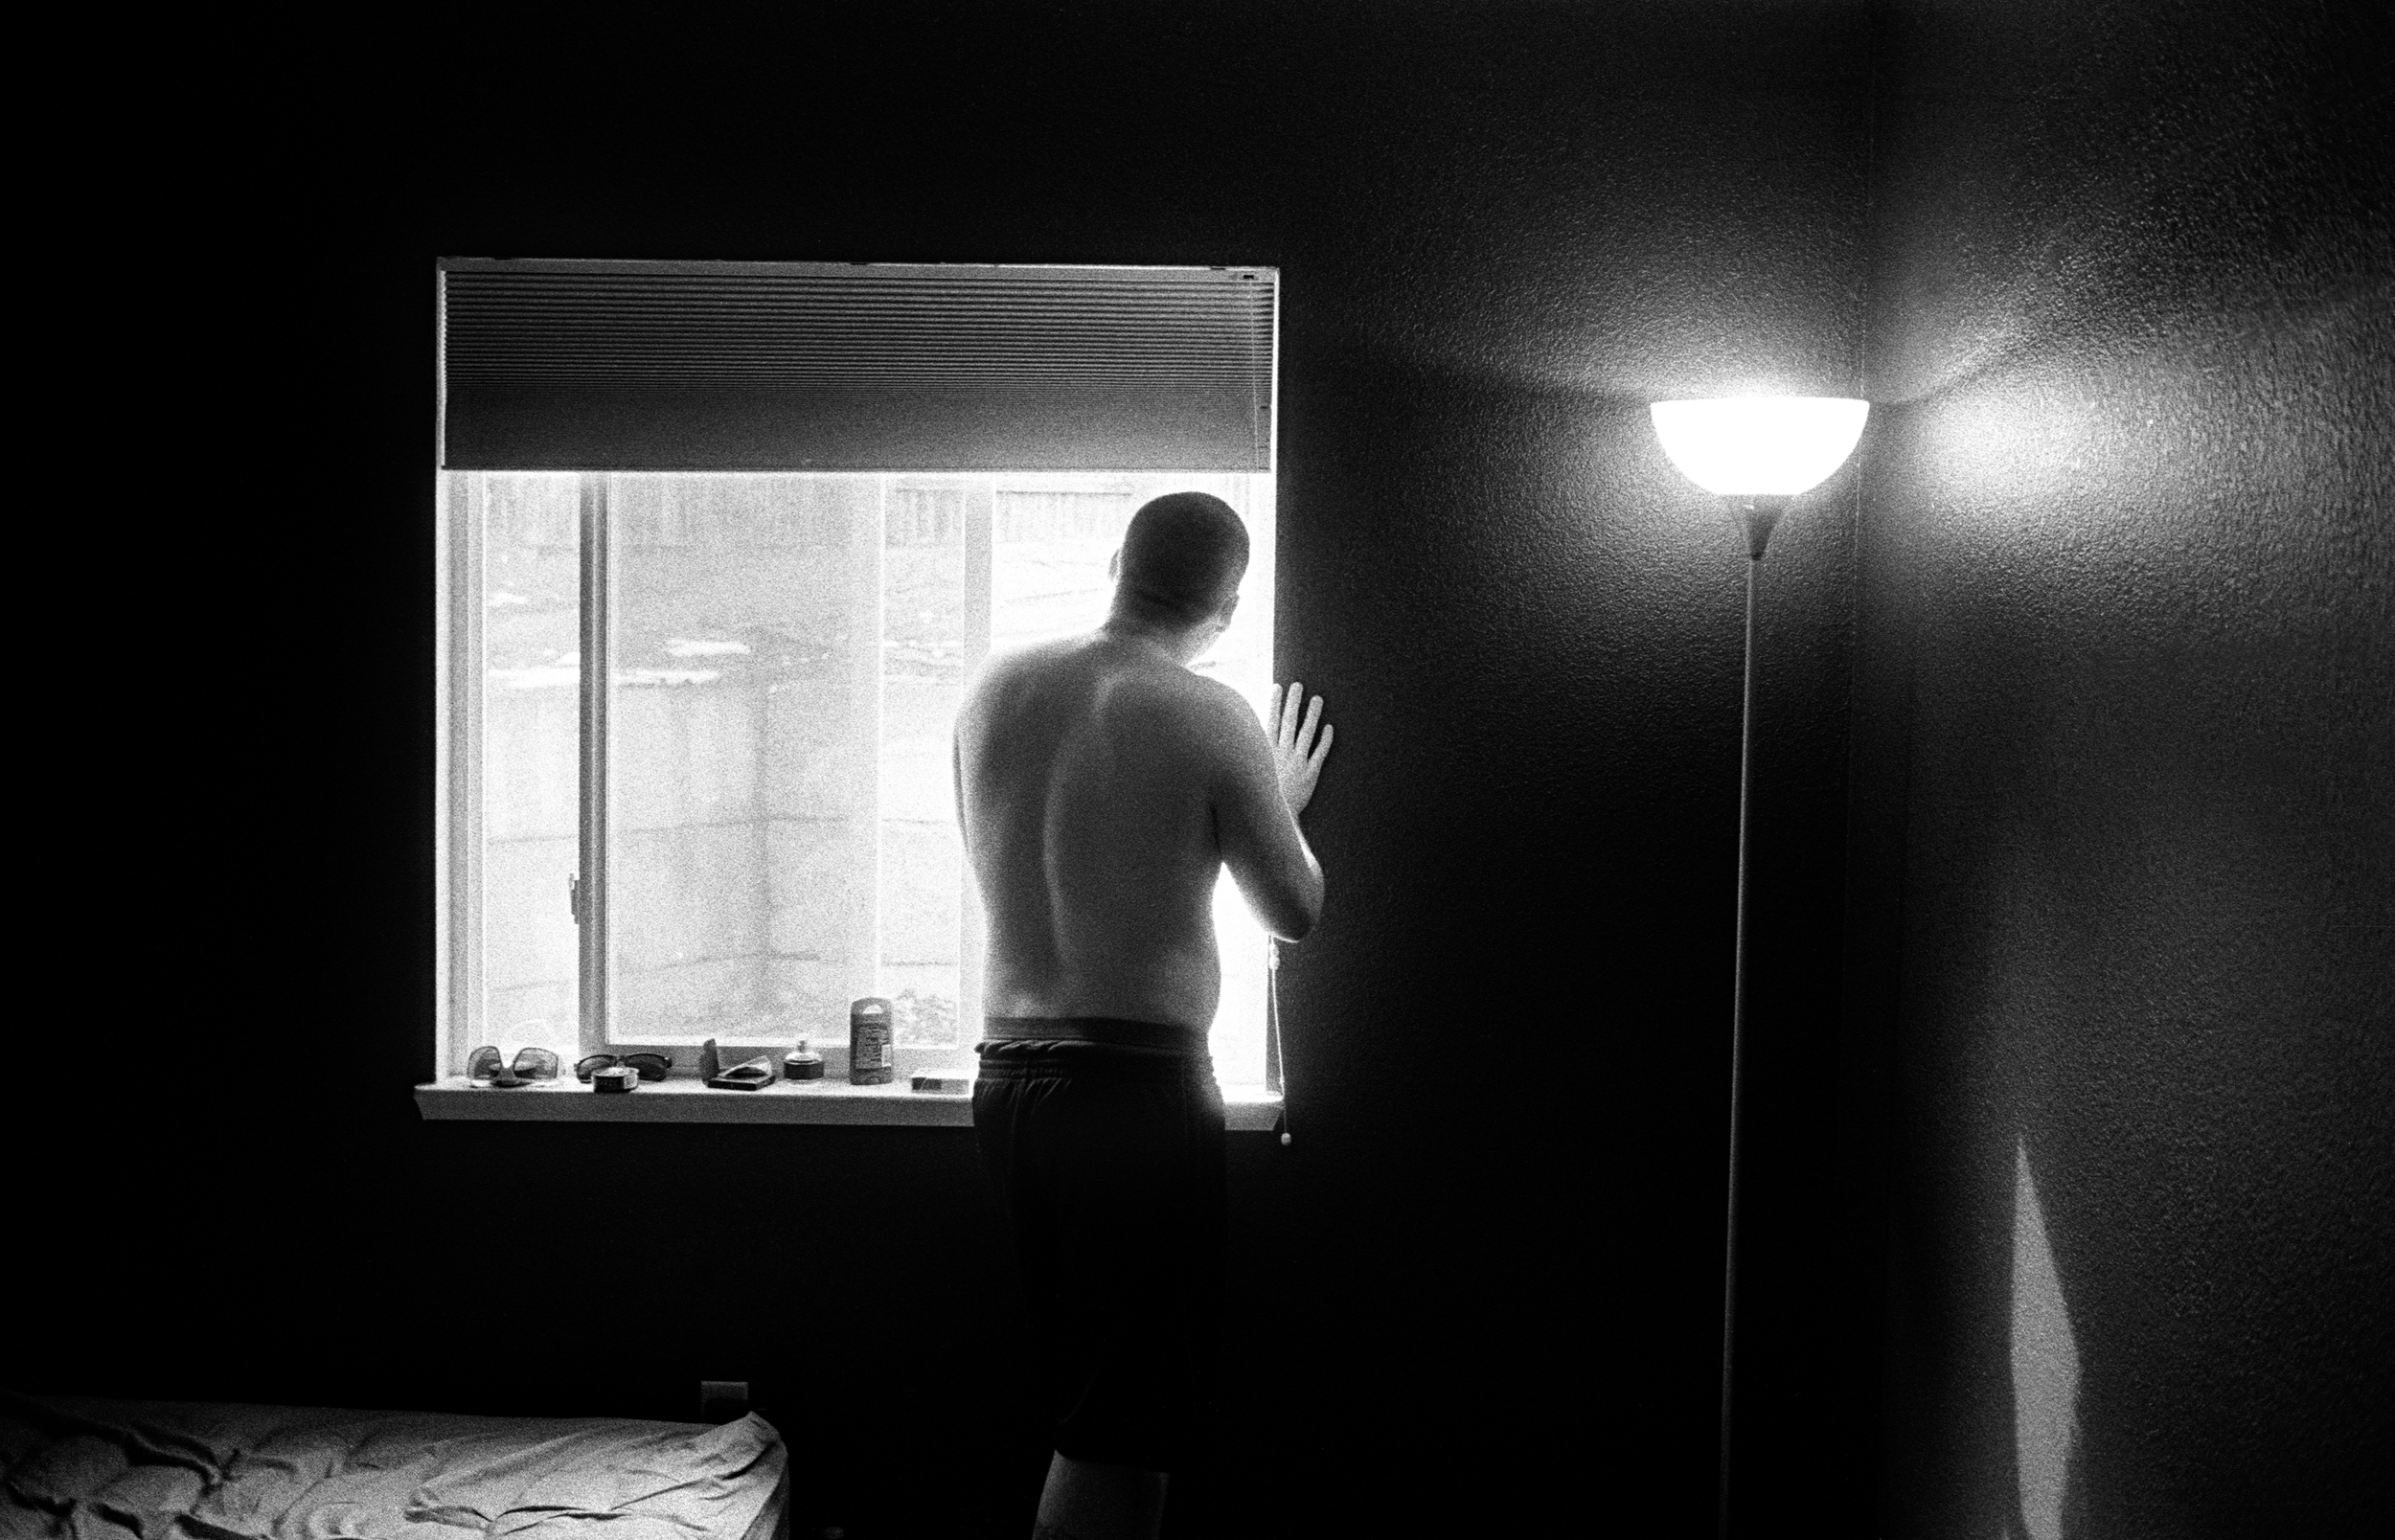 SPC Adam Ramsey, 22, looks out the bedroom window as he experience a psychotic episode in Carson City, Nevada, 2010. Ramsey served 12 months as a 240 machine gunner in Afghanistan. After returning home he became severely depression and began having psychosis and and suicidal thoughts.